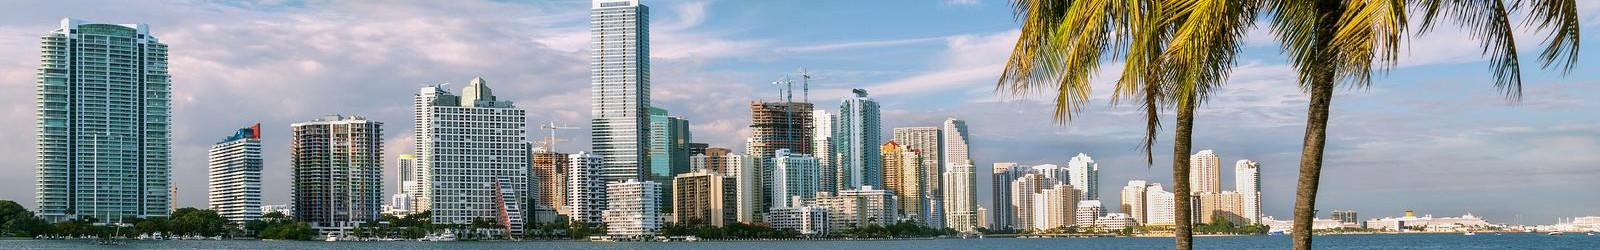 Therapists in Miami, Florida: psychologists, counselors, and mental health specialists